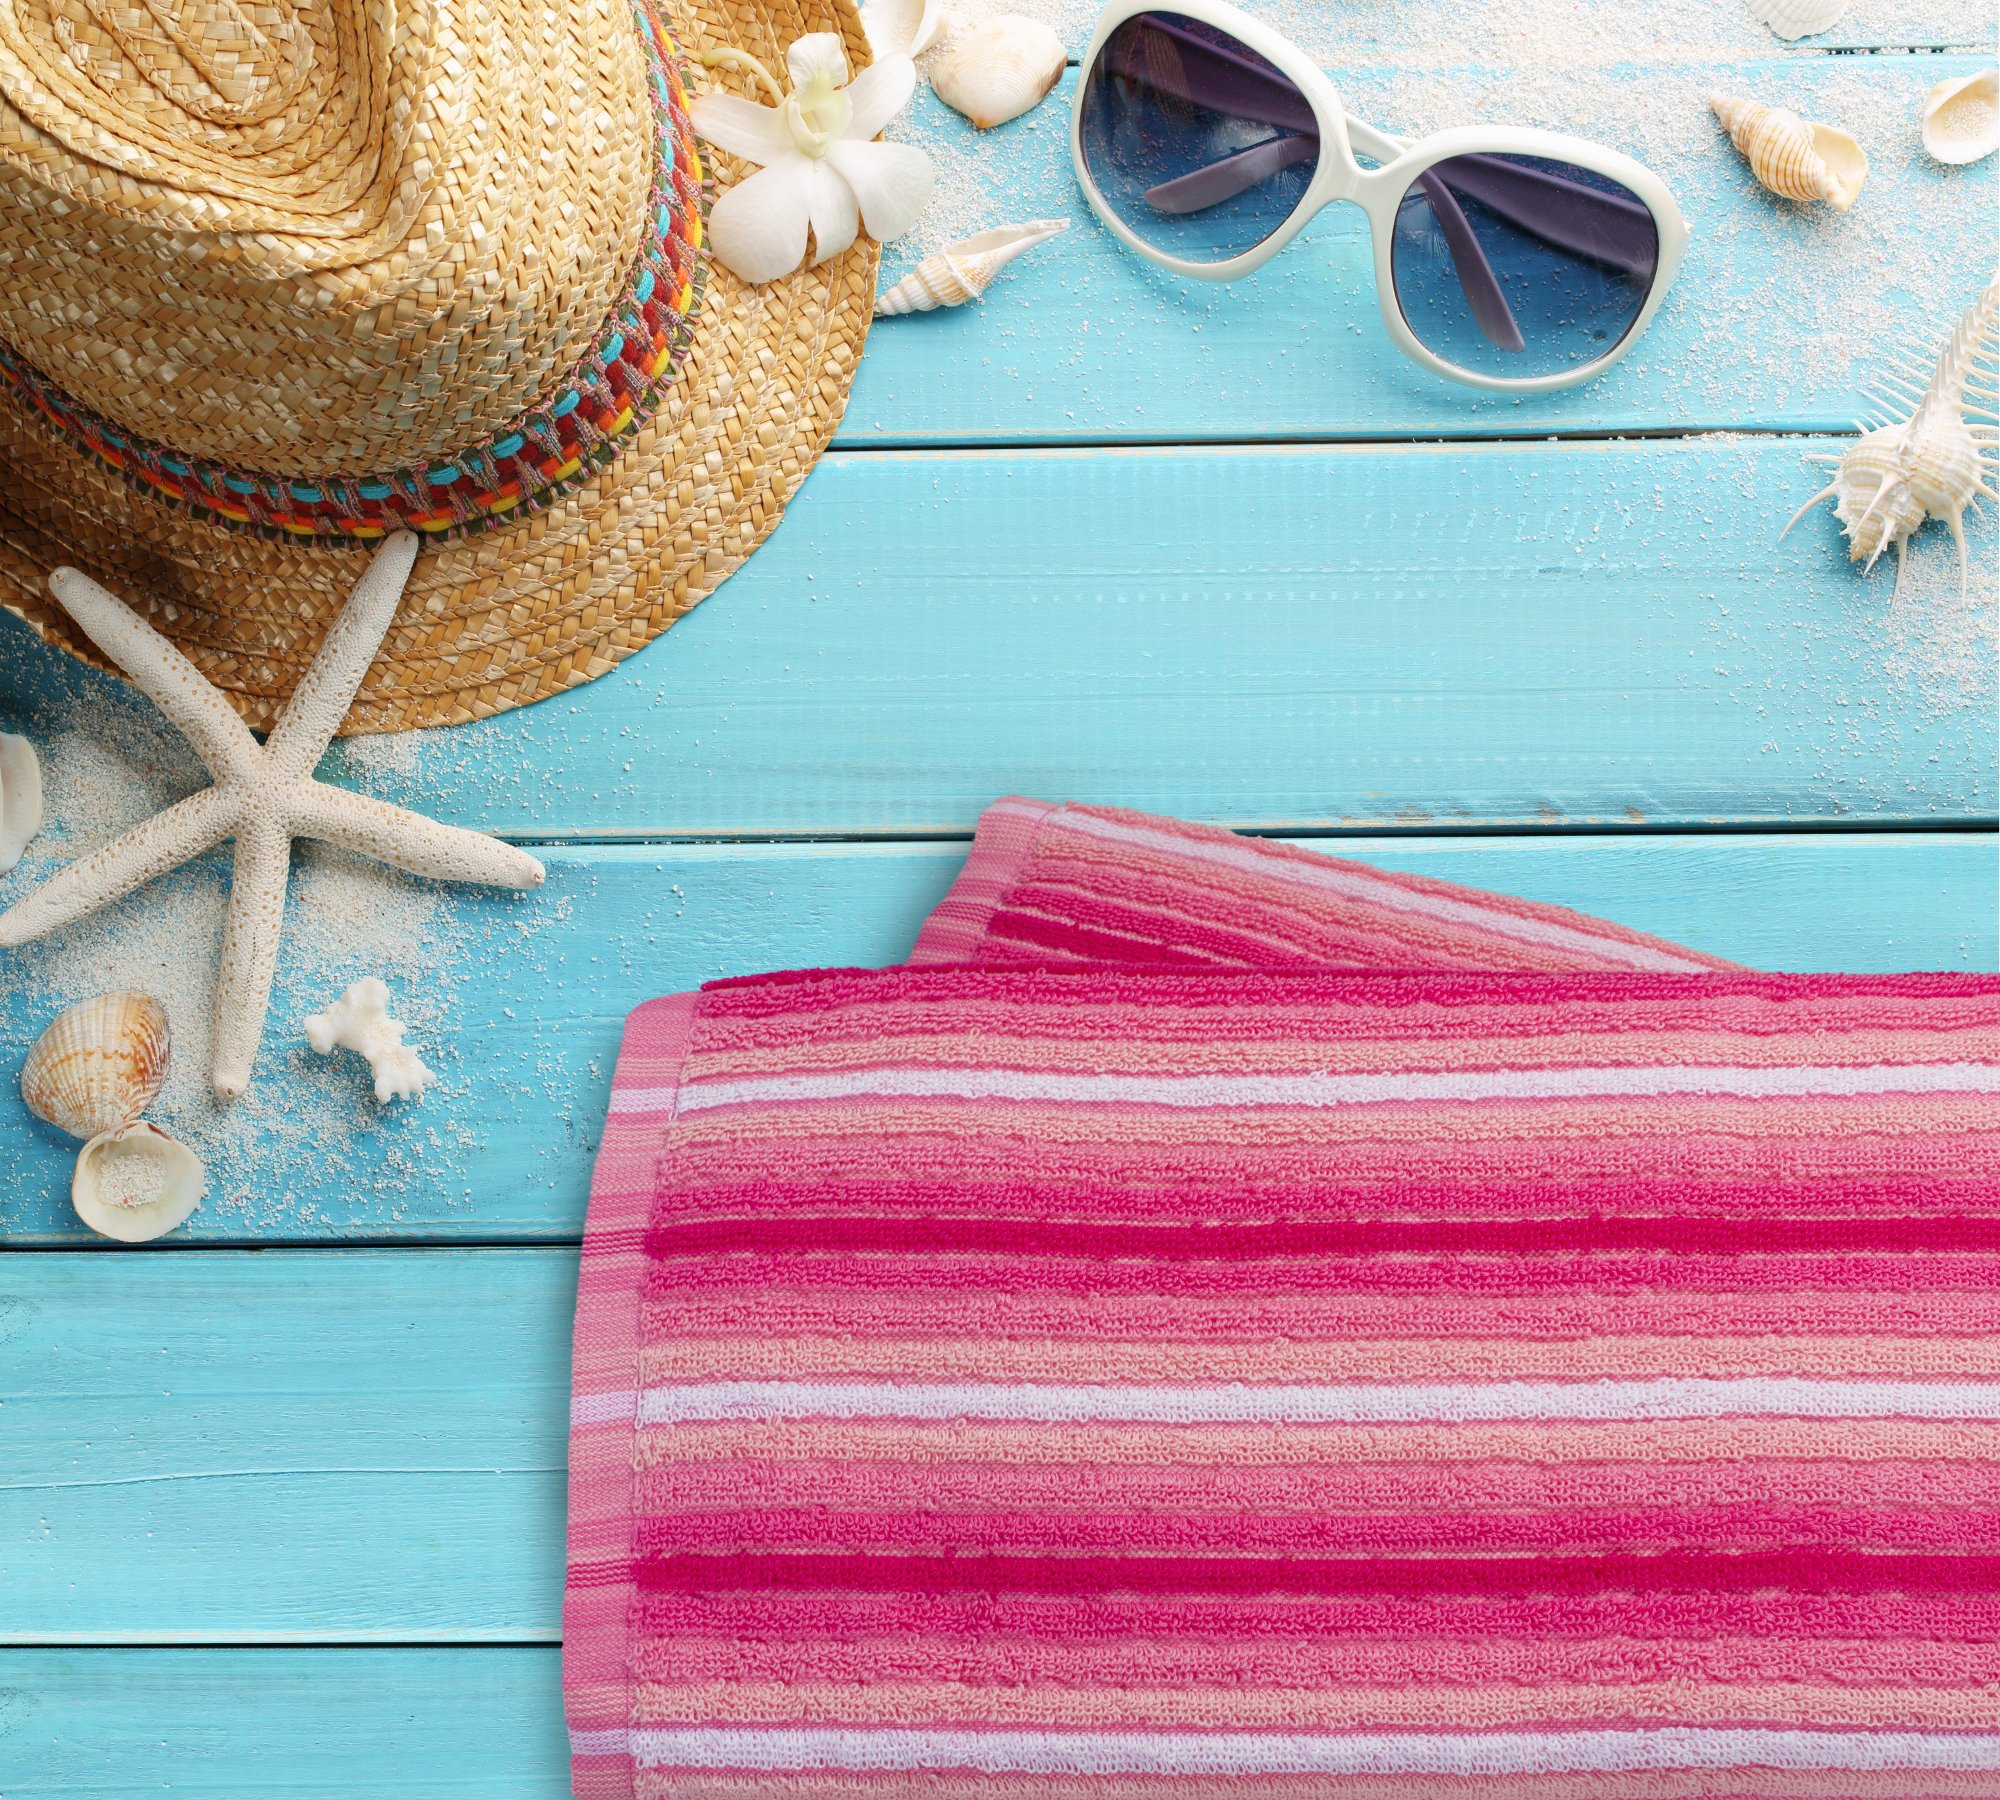 Everyday Resort Quality Cabana Ombre Pink Beach Towels - Pack of 2 Cabana Stripe Pool Towels 100% Cotton - Large 60'' by 30'' - Soft and Absorbent, Great for the Pool and the Beach!